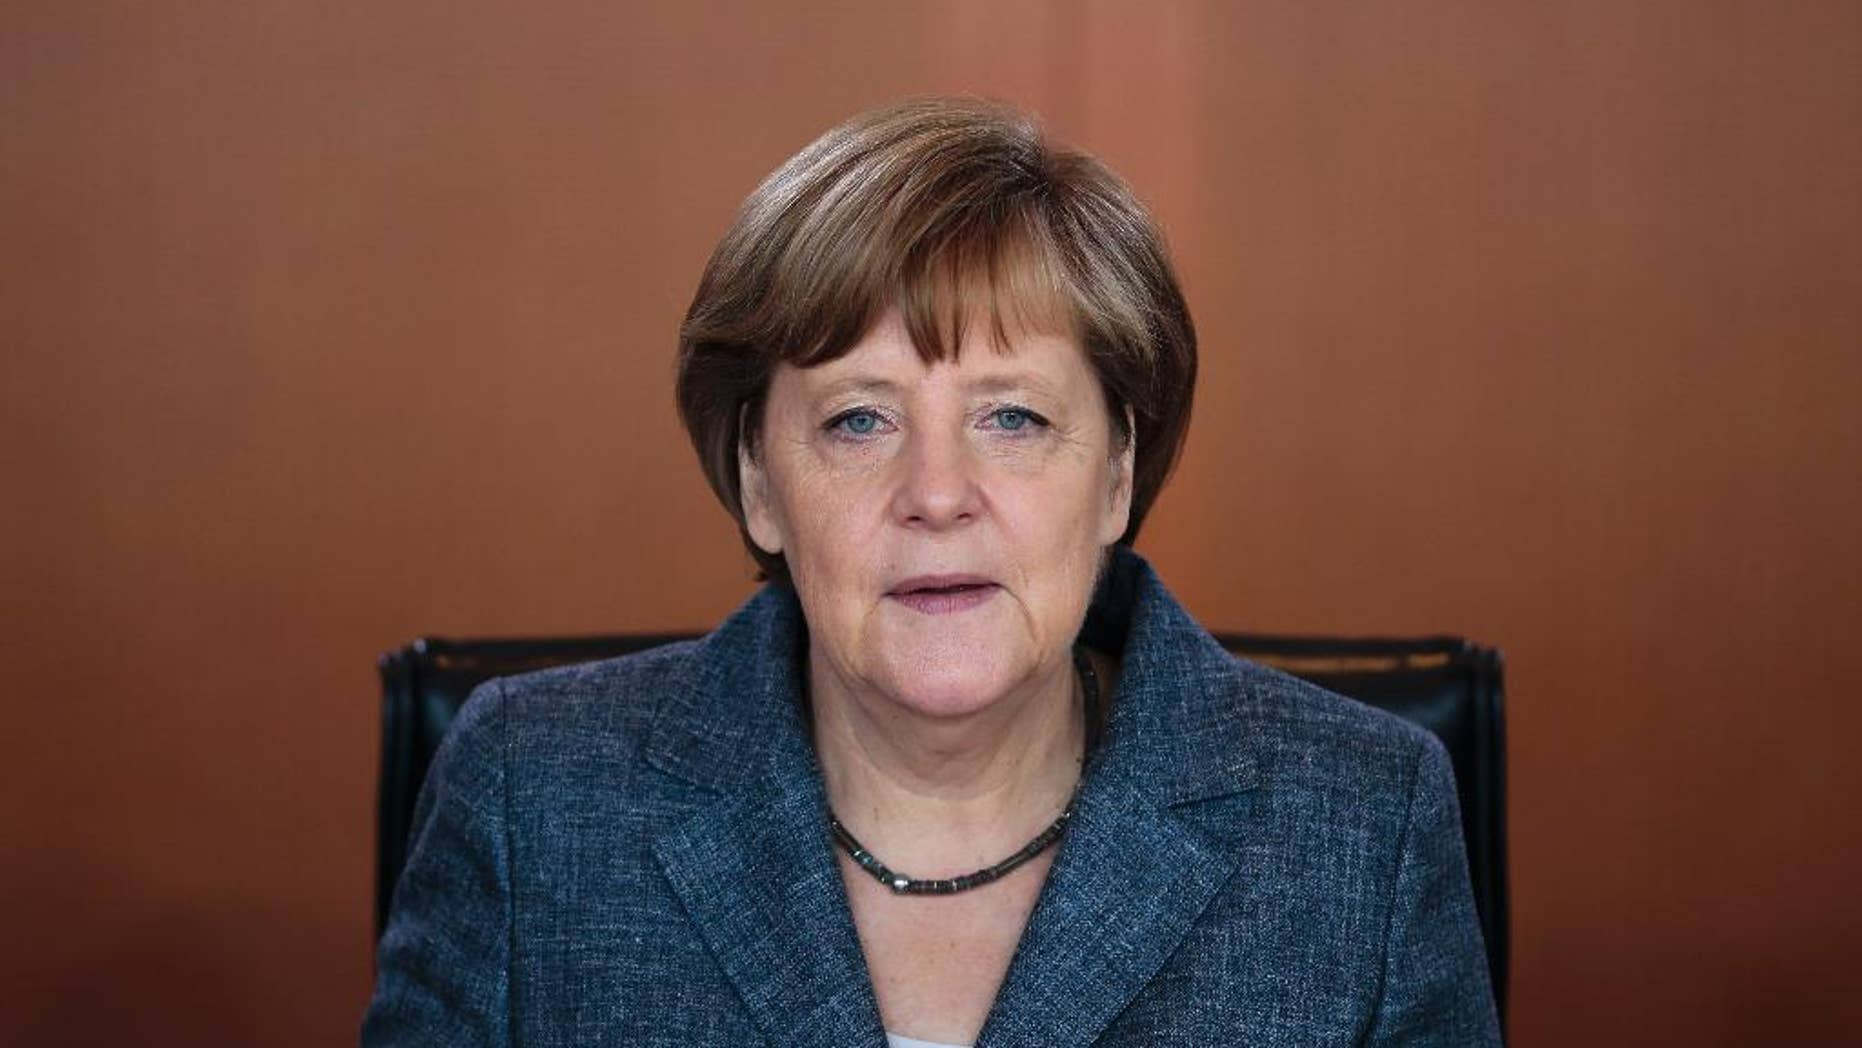 German Chancellor Angela Merkel arrives for the German government's weekly cabinet meeting at the chancellery in Berlin, Germany, Wednesday, June 3, 2015. (AP Photo/Markus Schreiber)